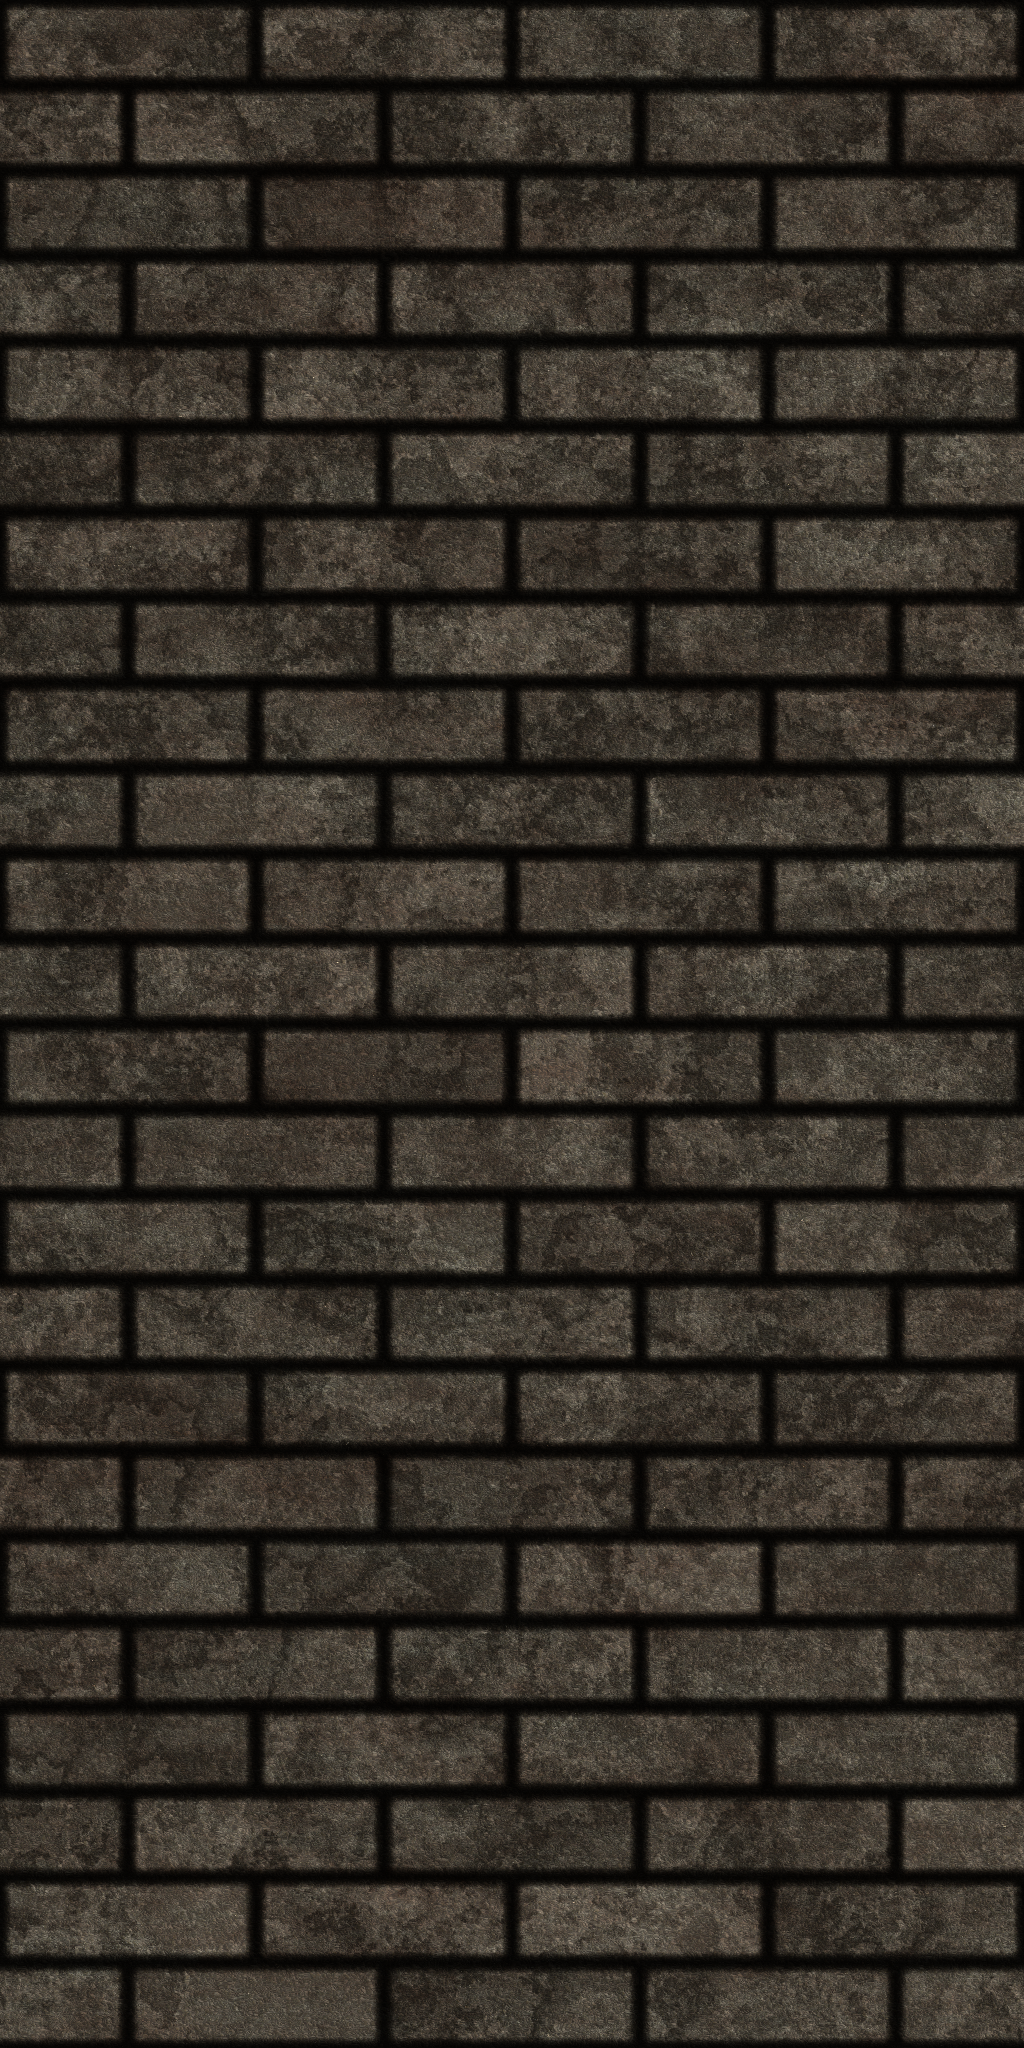 Small Brown Bricks 02 by Hoover1979